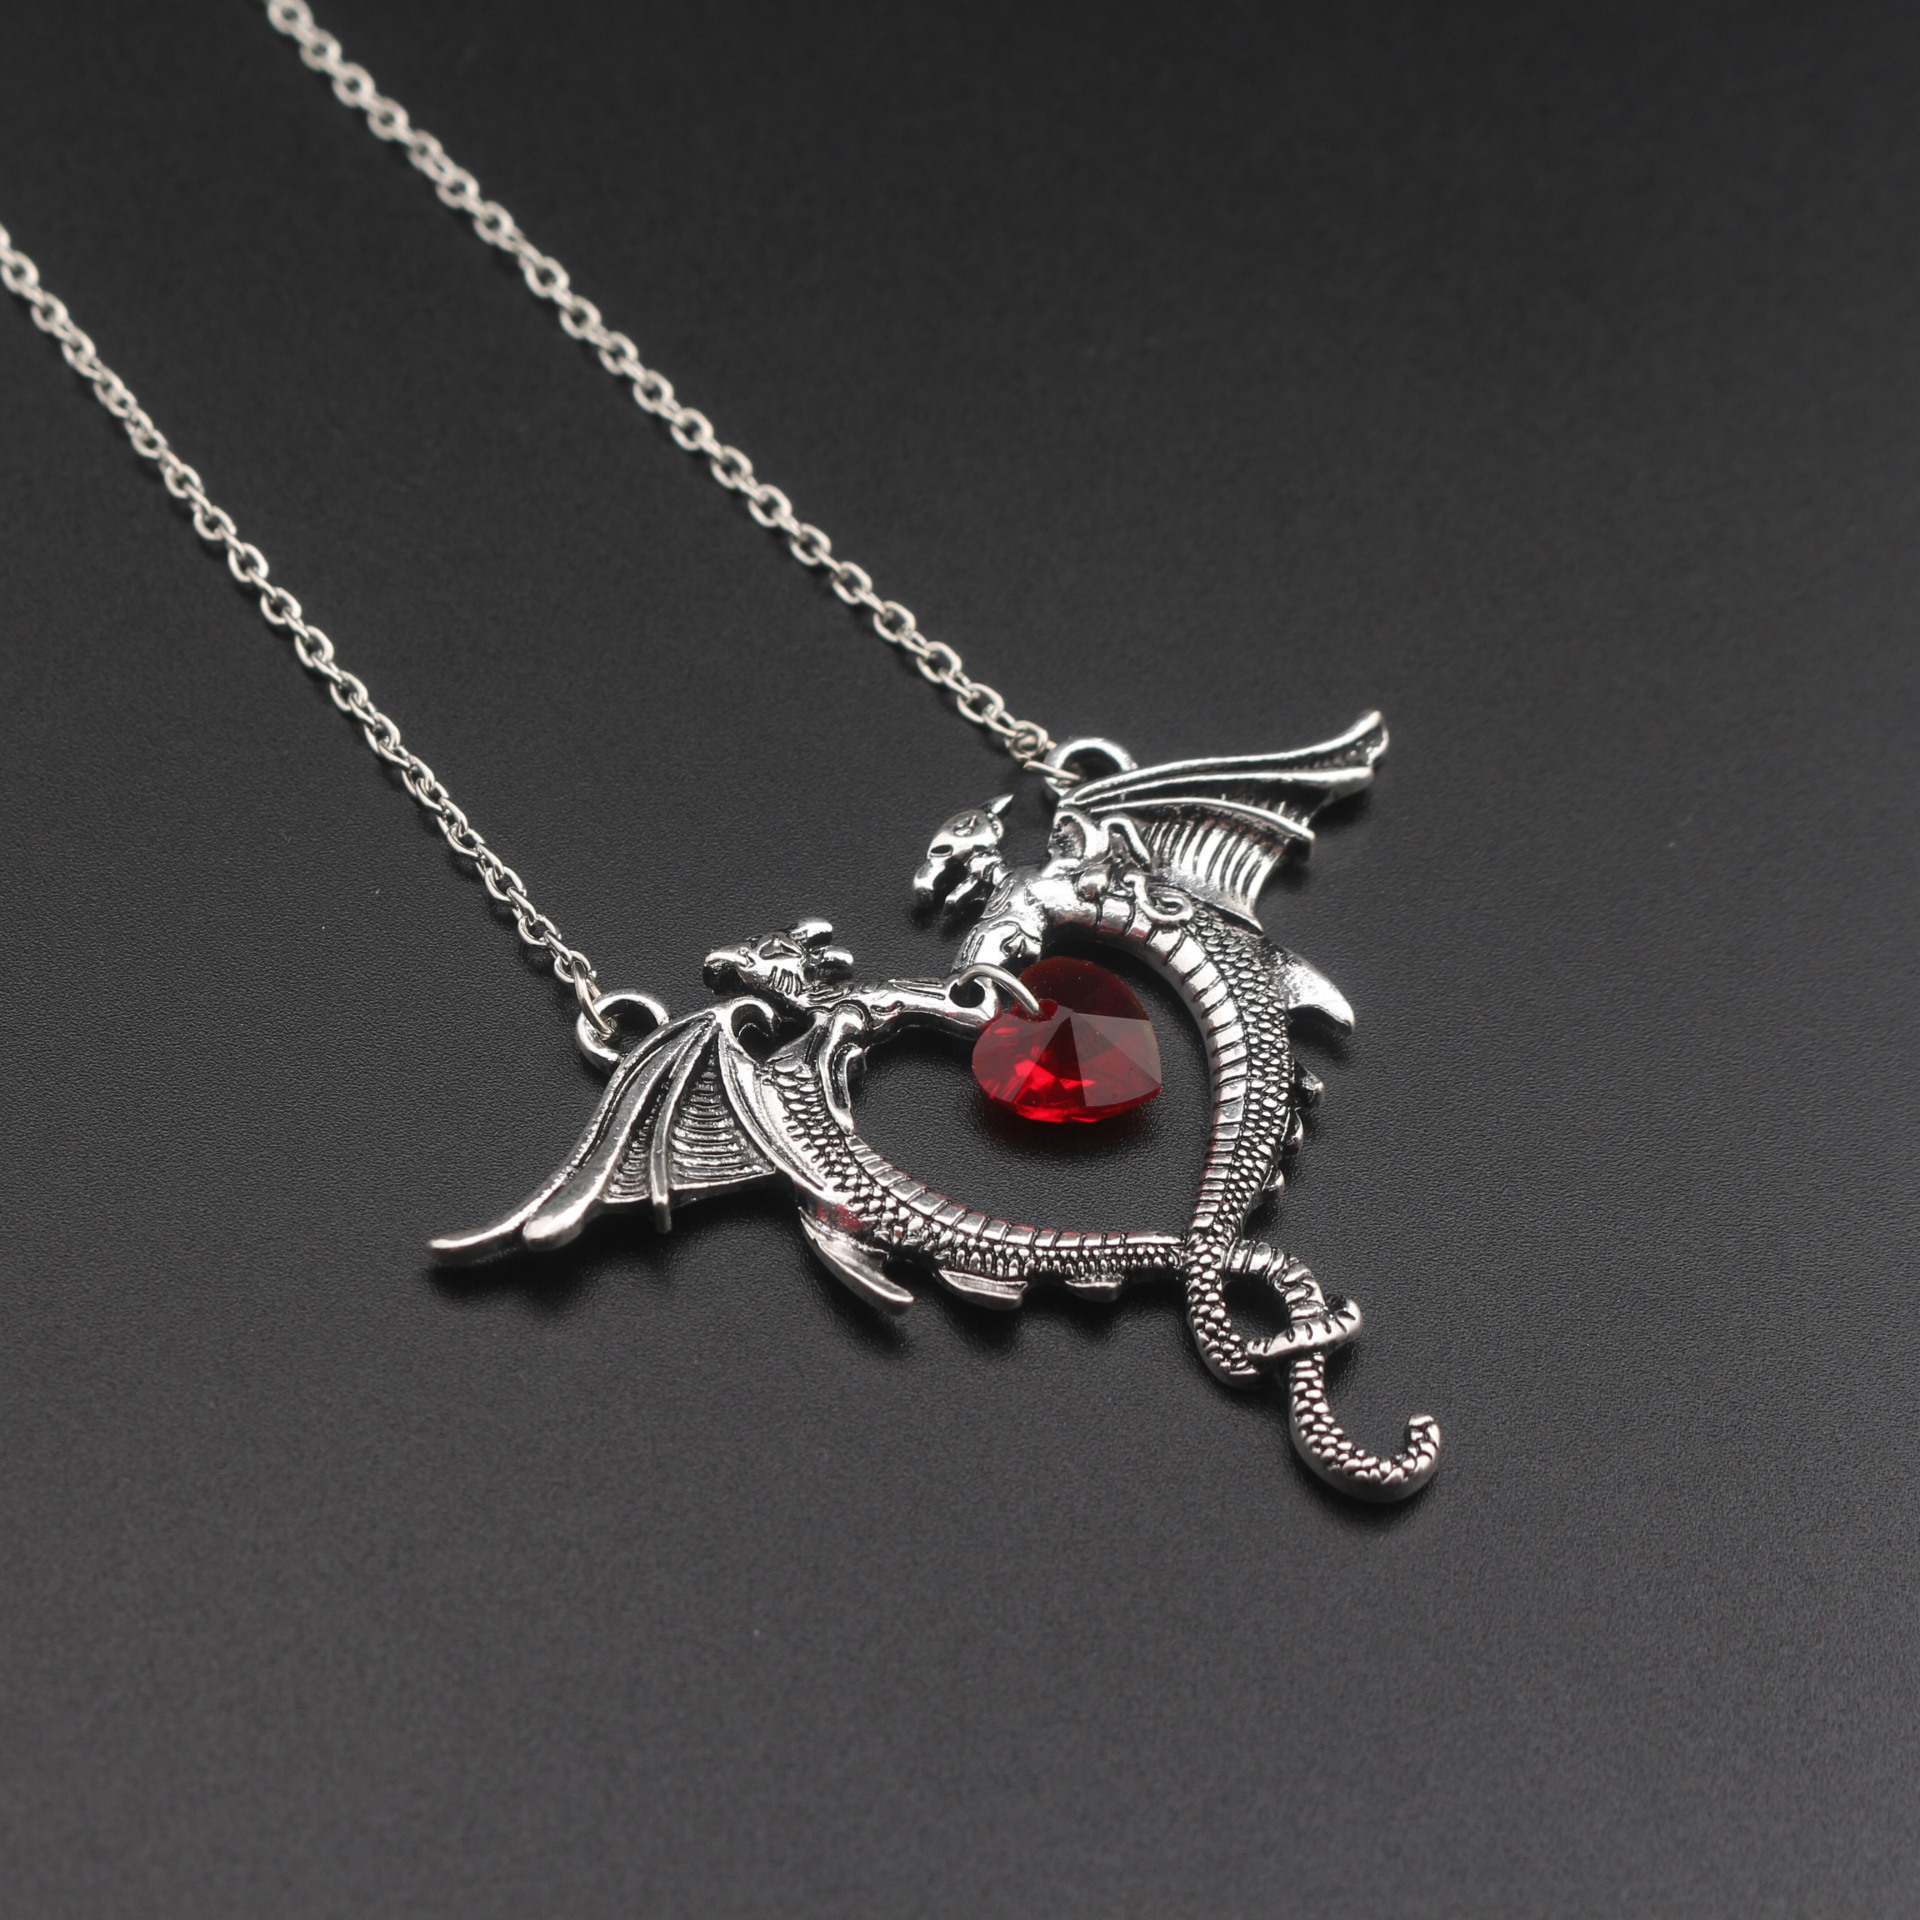 Vintage Necklace Jewelry Women Crystal Heart Necklace Dragon Necklaces